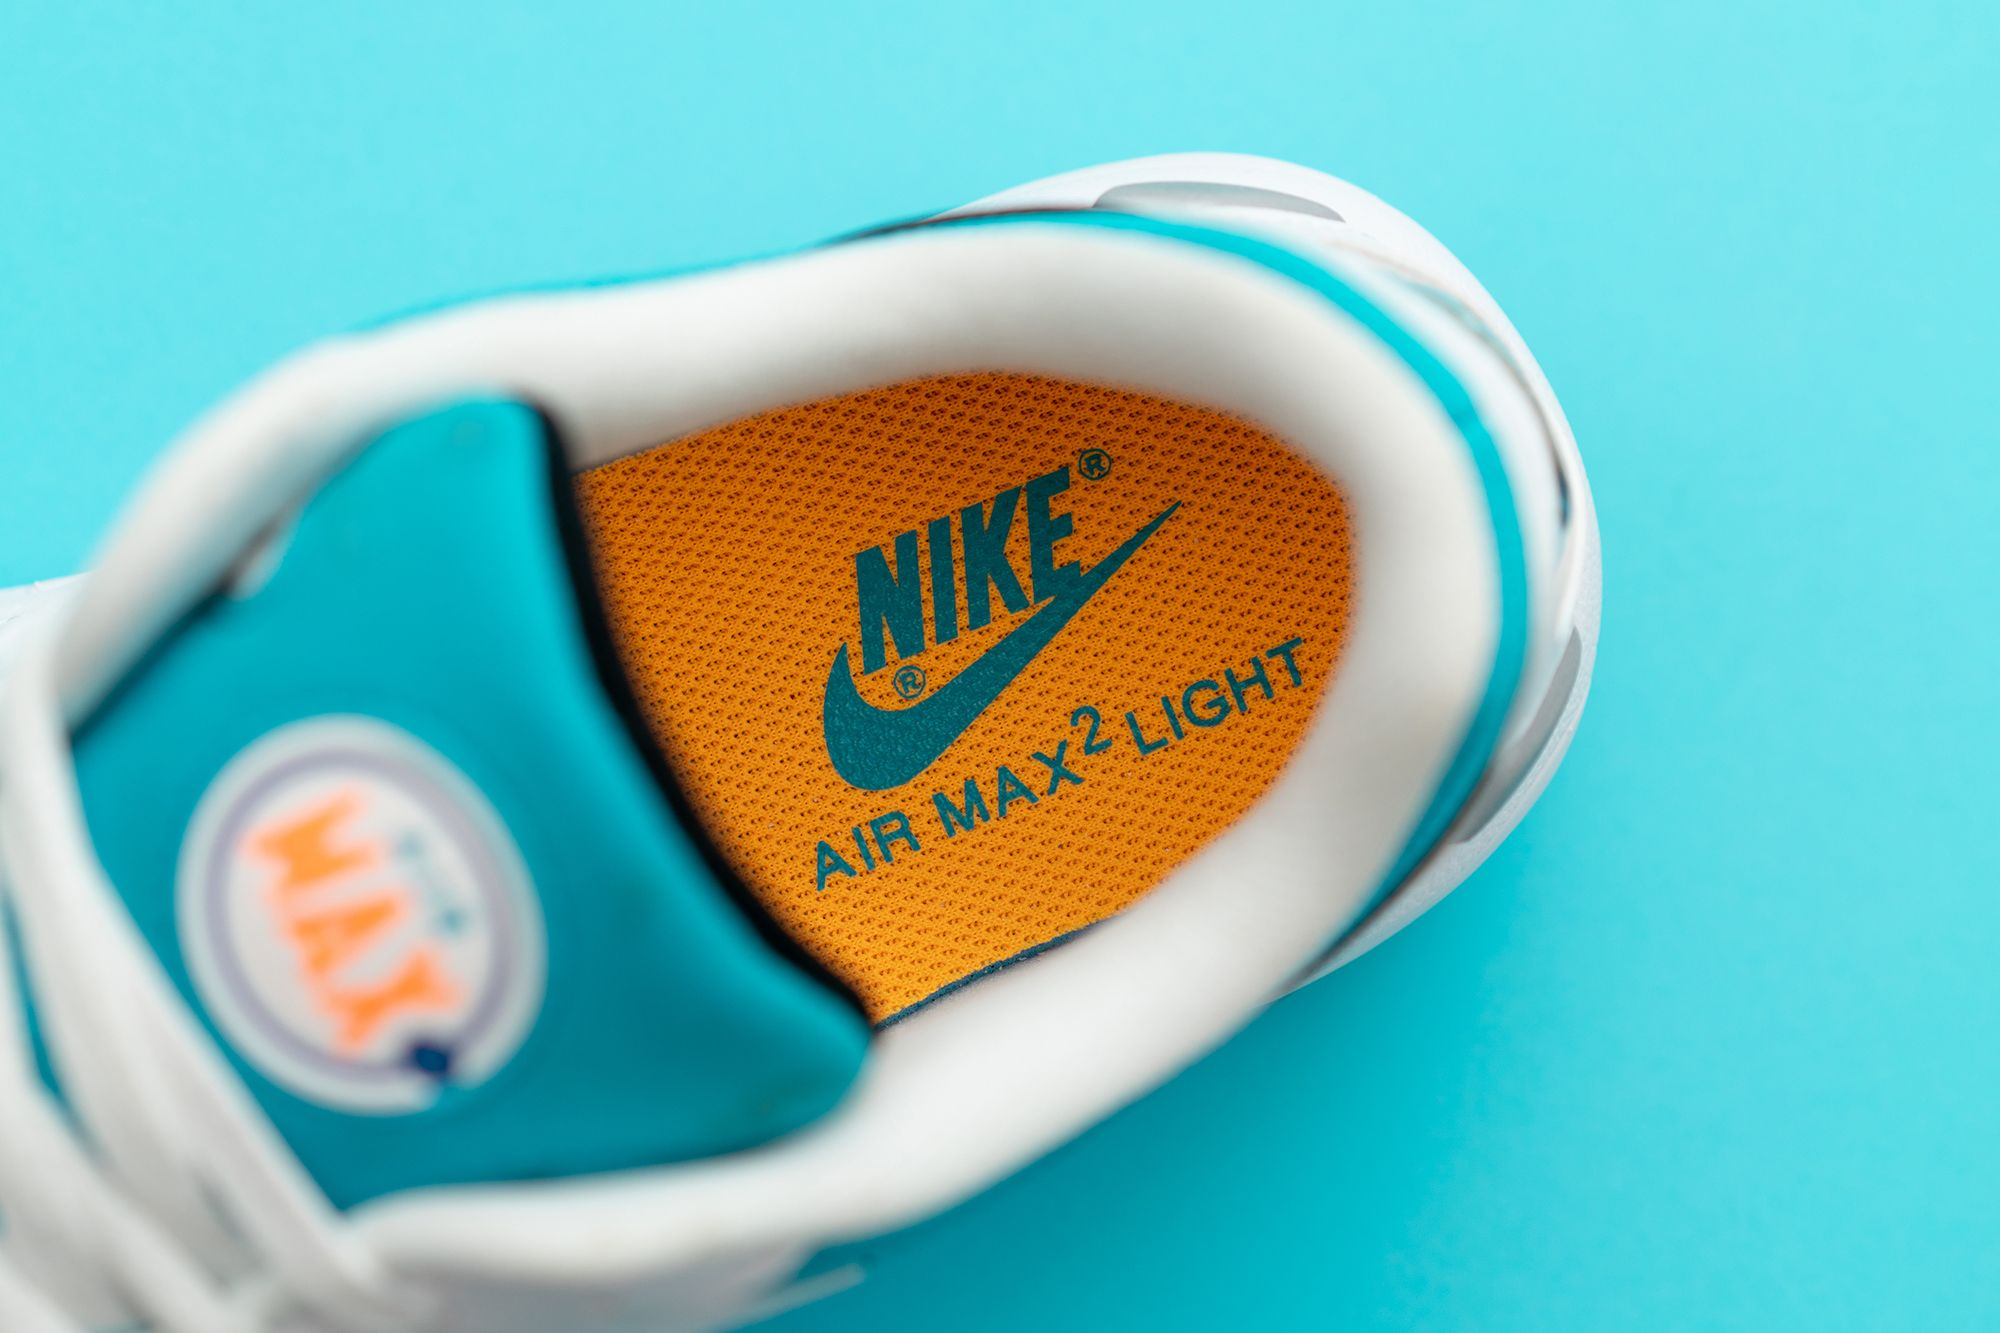 The Nike Air Max2 Light Is Back in More Retro Colors